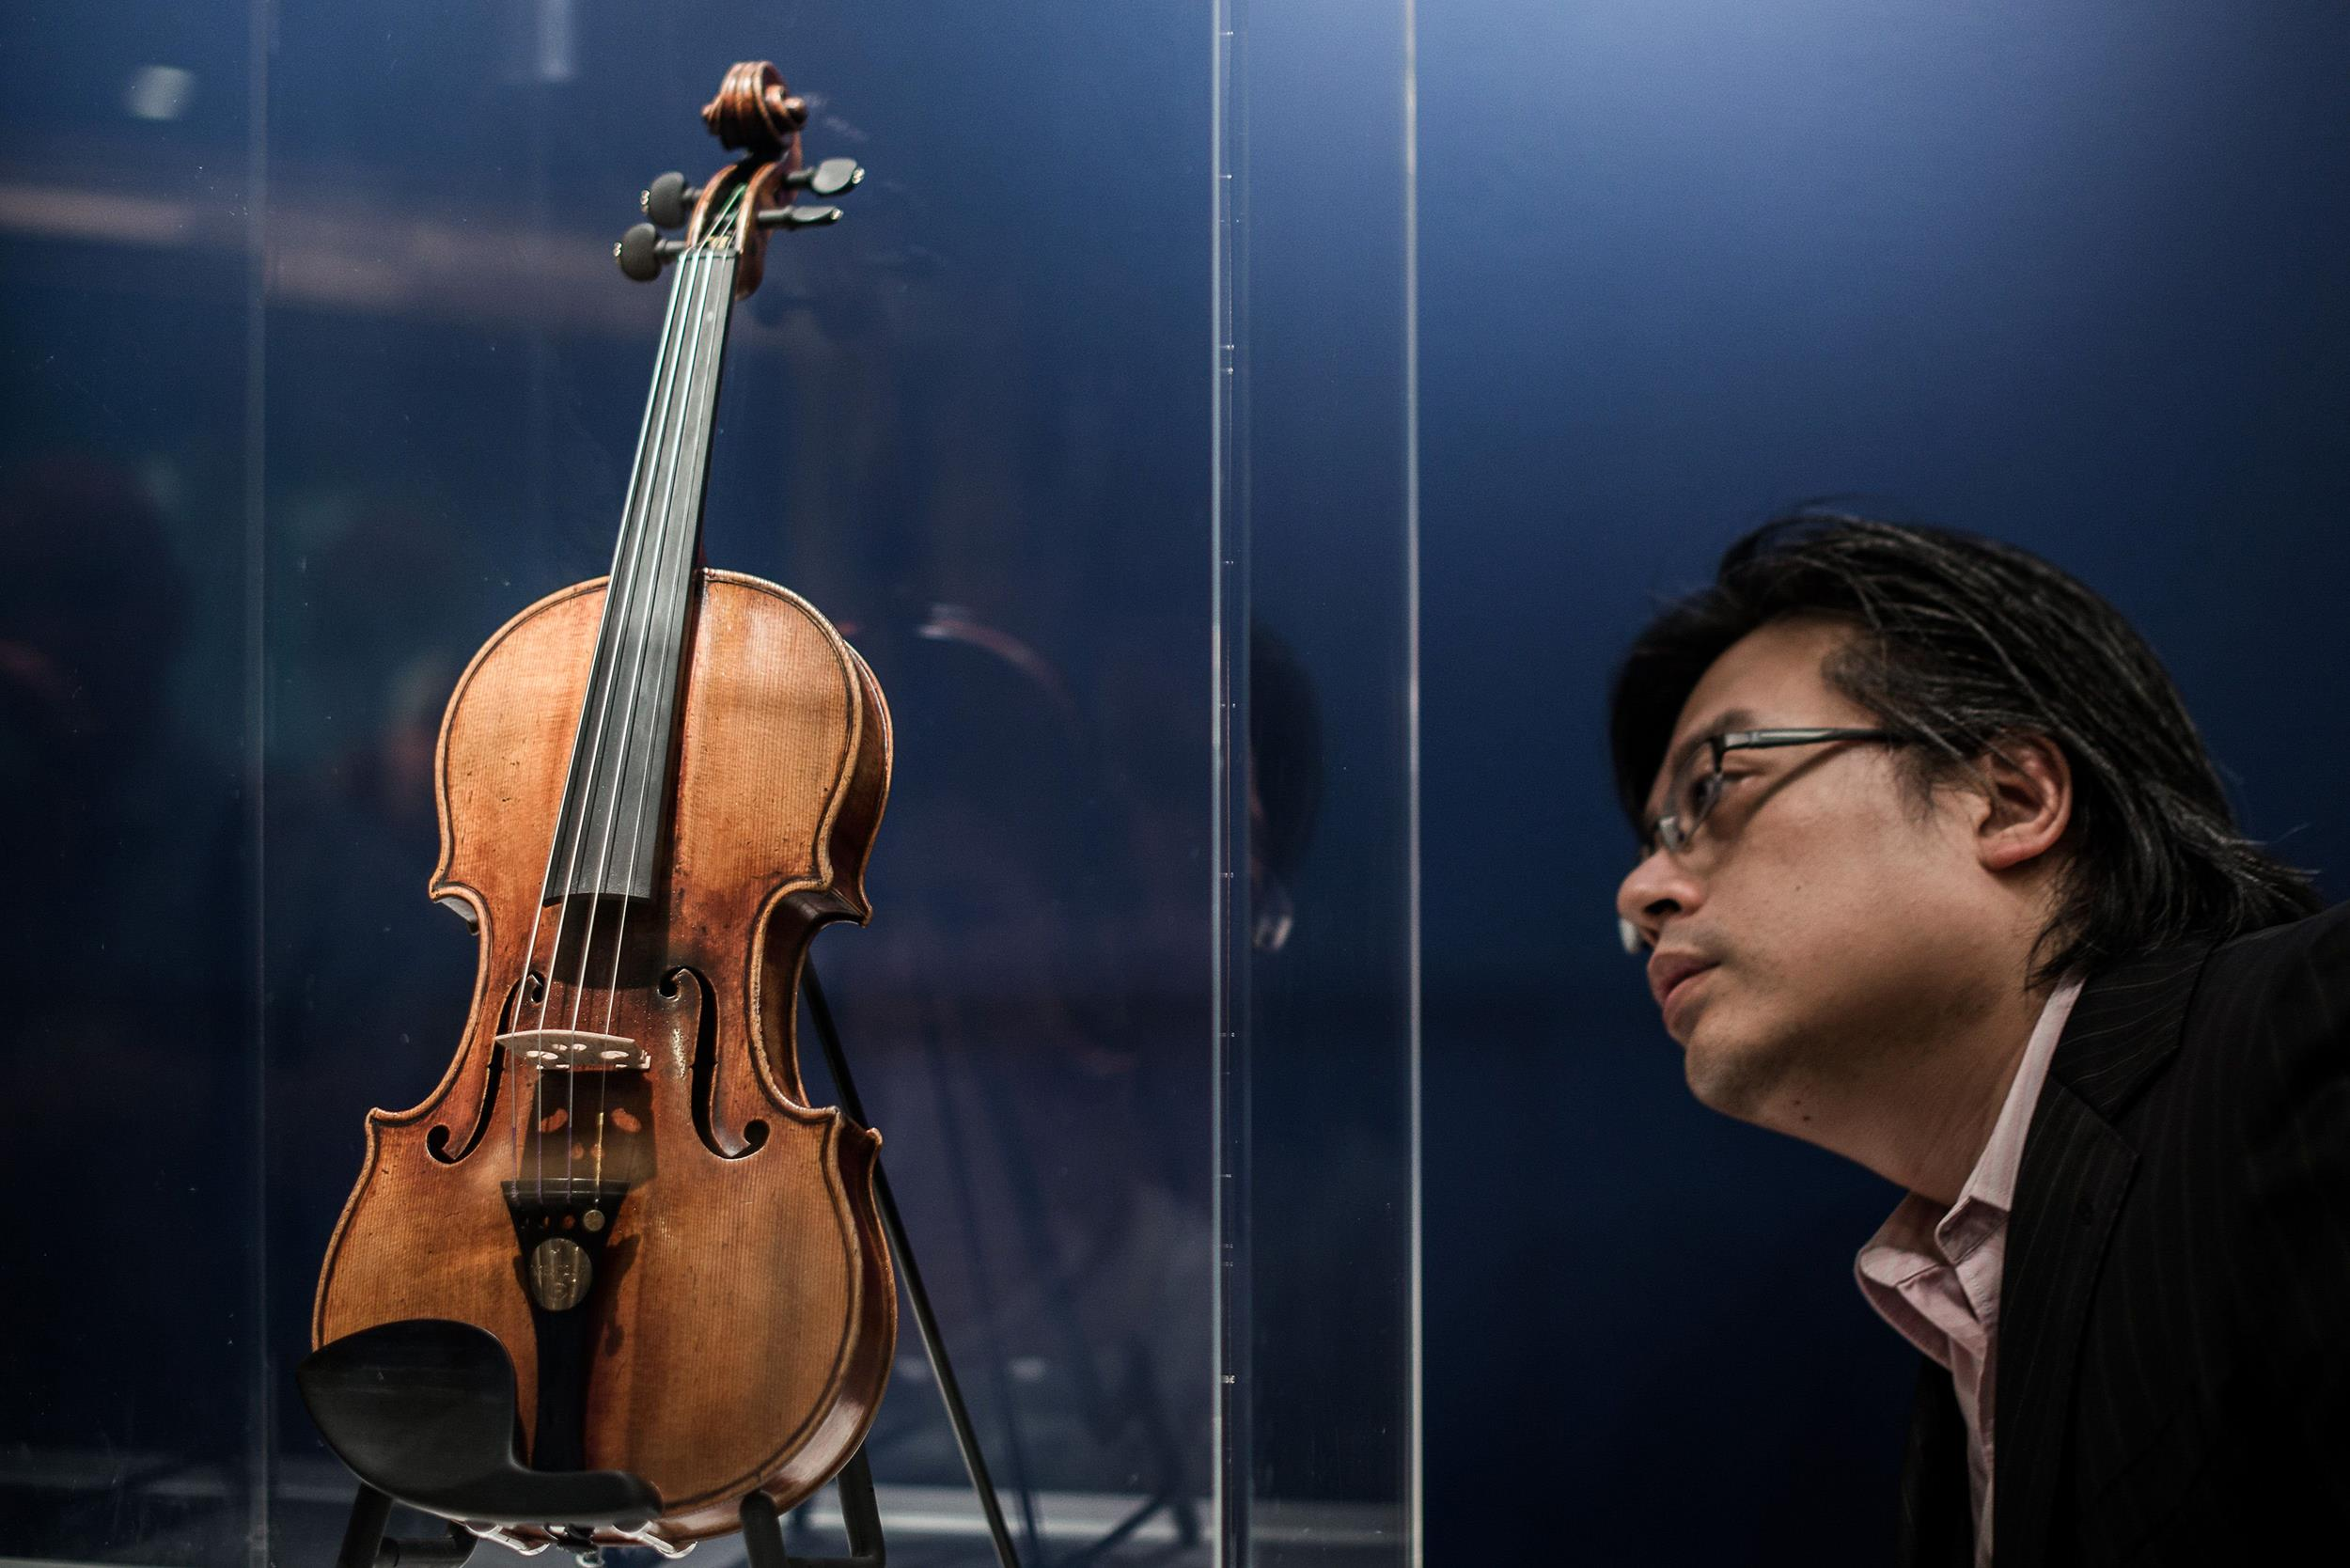 Image: A Stradivarius violin once owned by French violinist Rodolphe Kreutzer is displayed by Christie's auction house